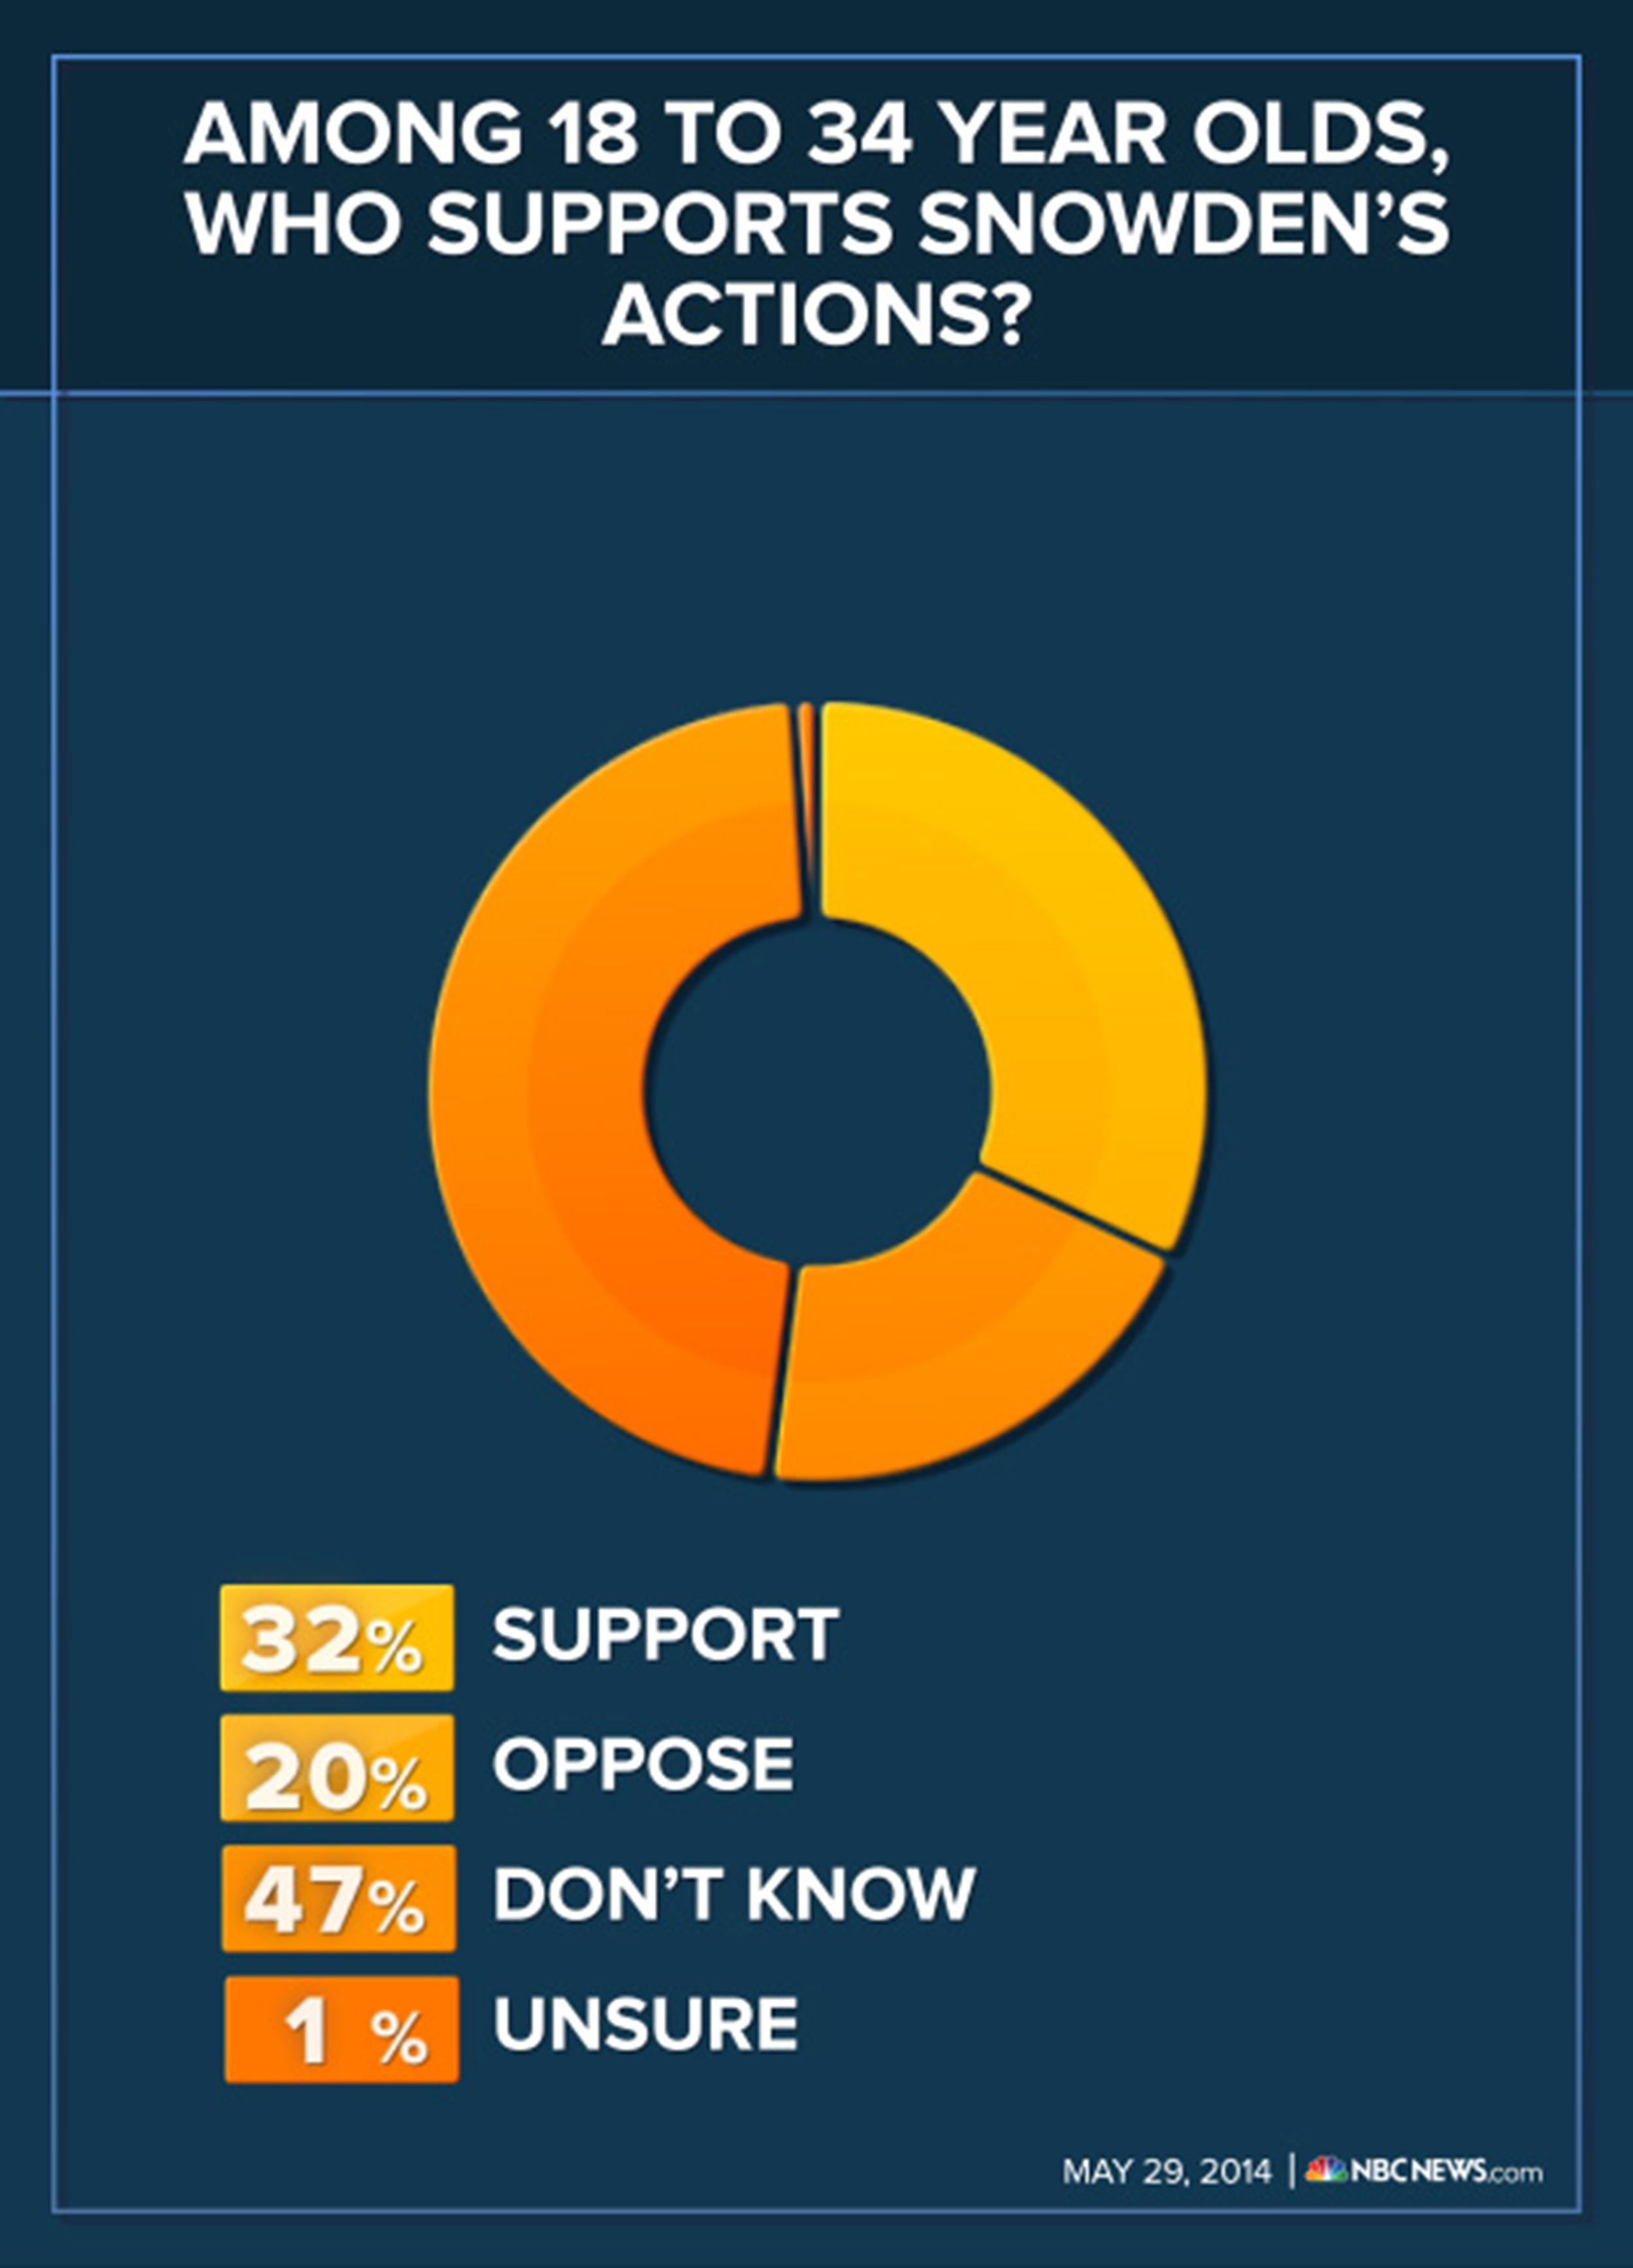 Image: Graphic on support for Snowden's actions